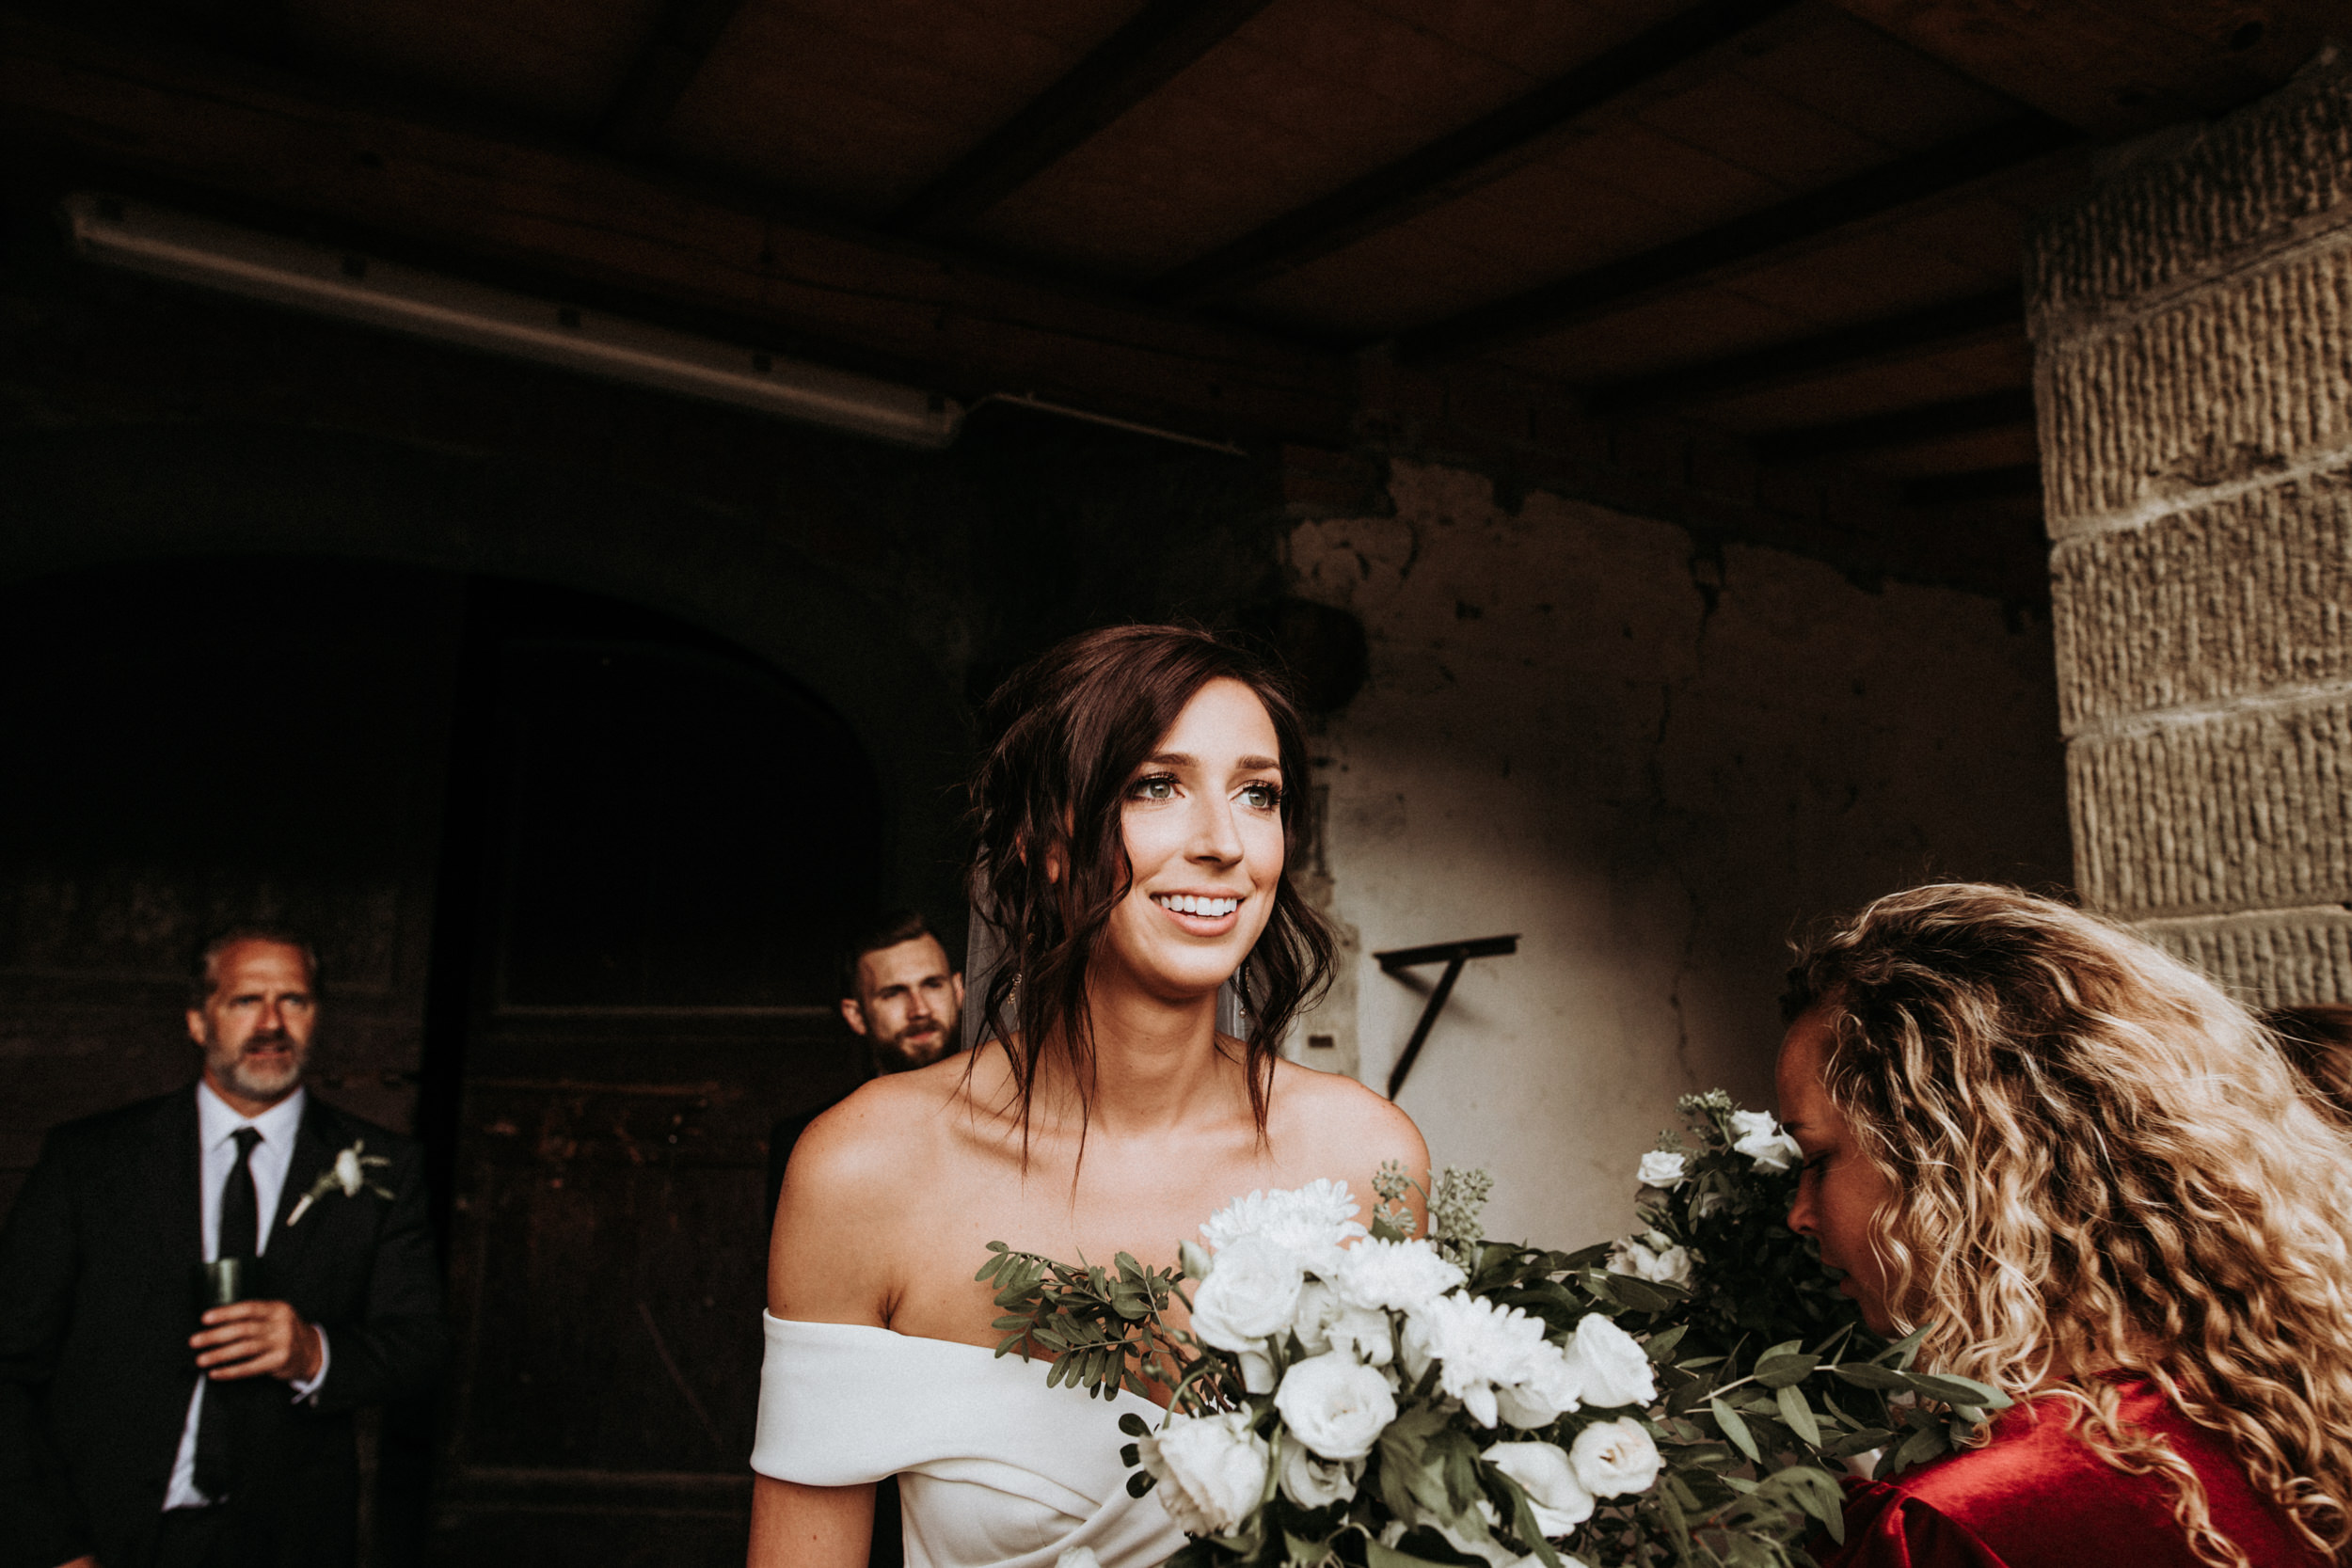 dm_photography_KW_Tuscanyweddingday_274